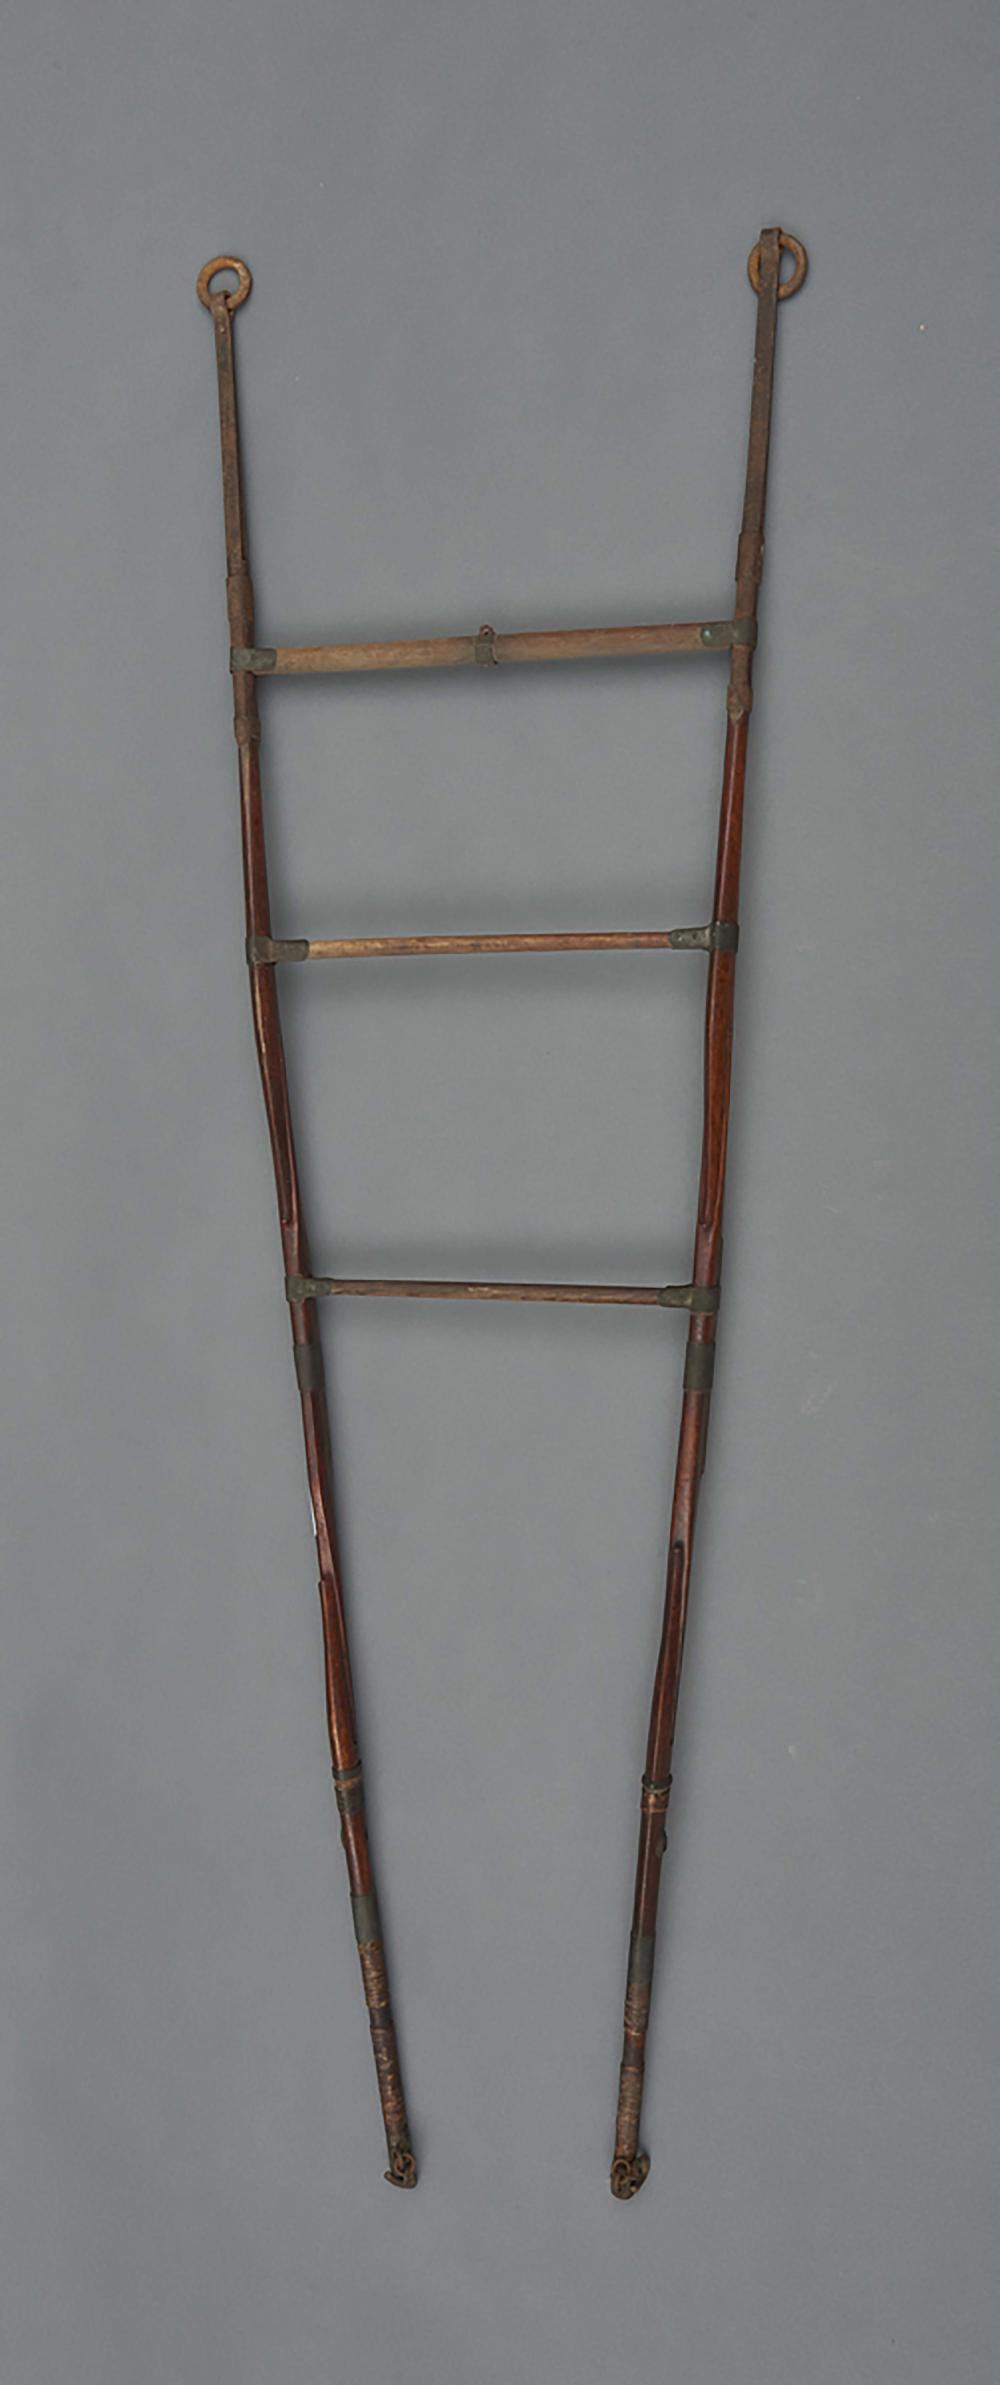 Rare wood and metal rack resembling a ladder and used to hang various artef